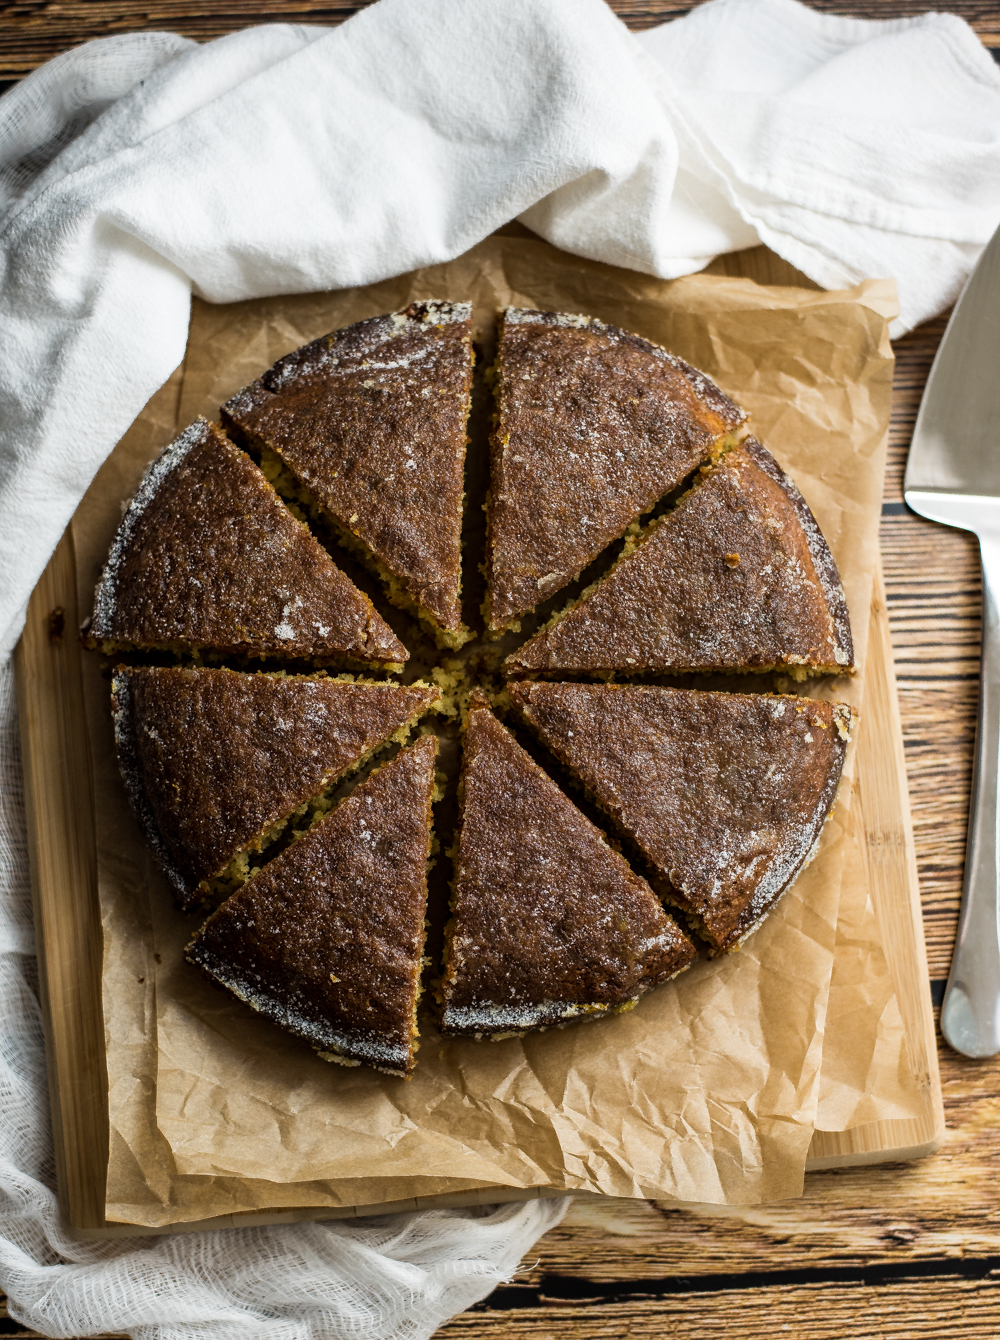 Citrus crunch cake is the perfect autumn dessert. It resembles coffee cake, but has the most amazing sugared crunchy topping!